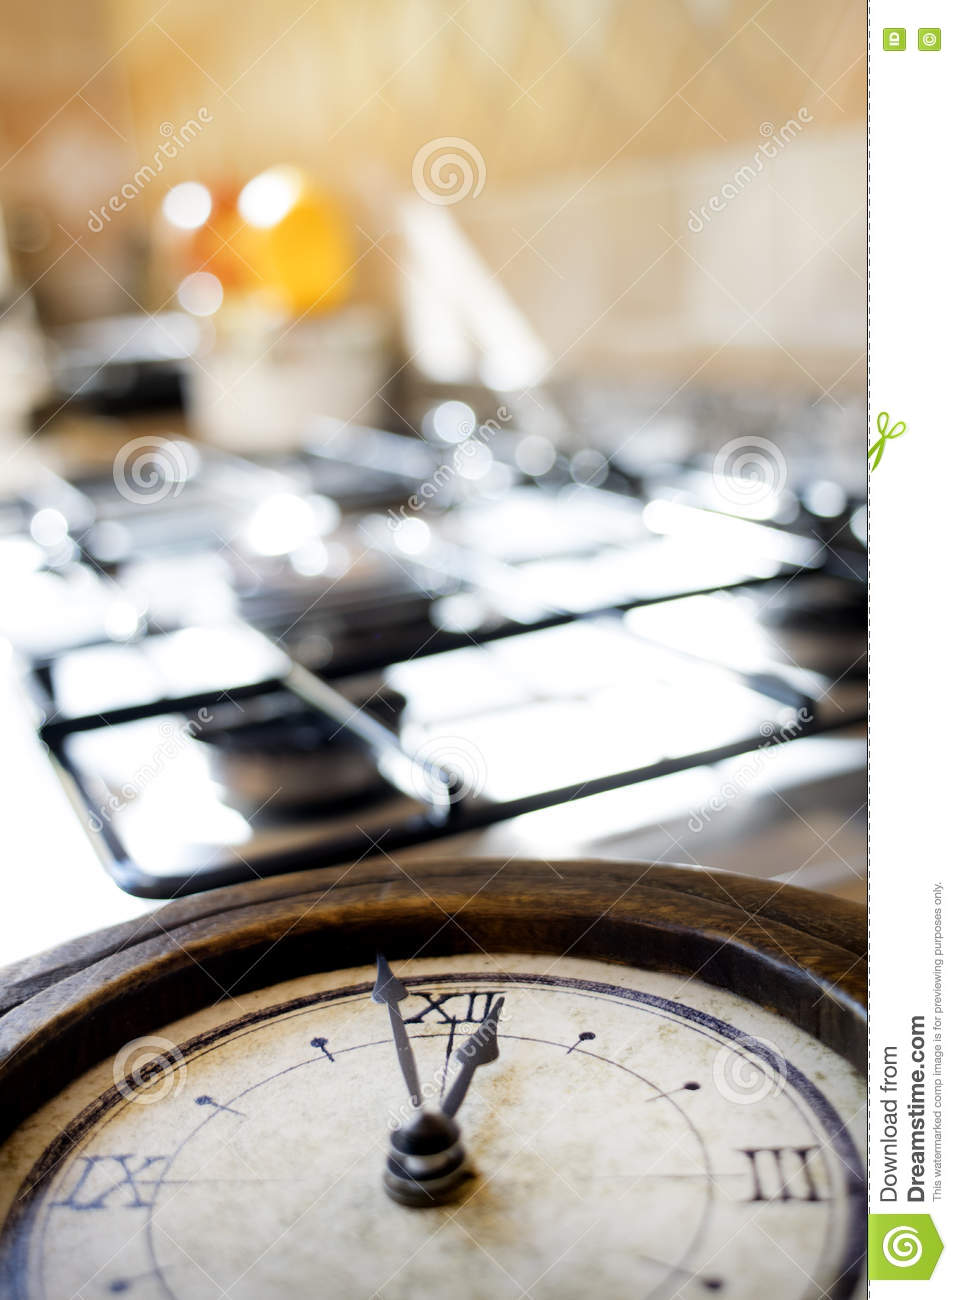 Lunch Time Dining Royalty-Free Stock Image